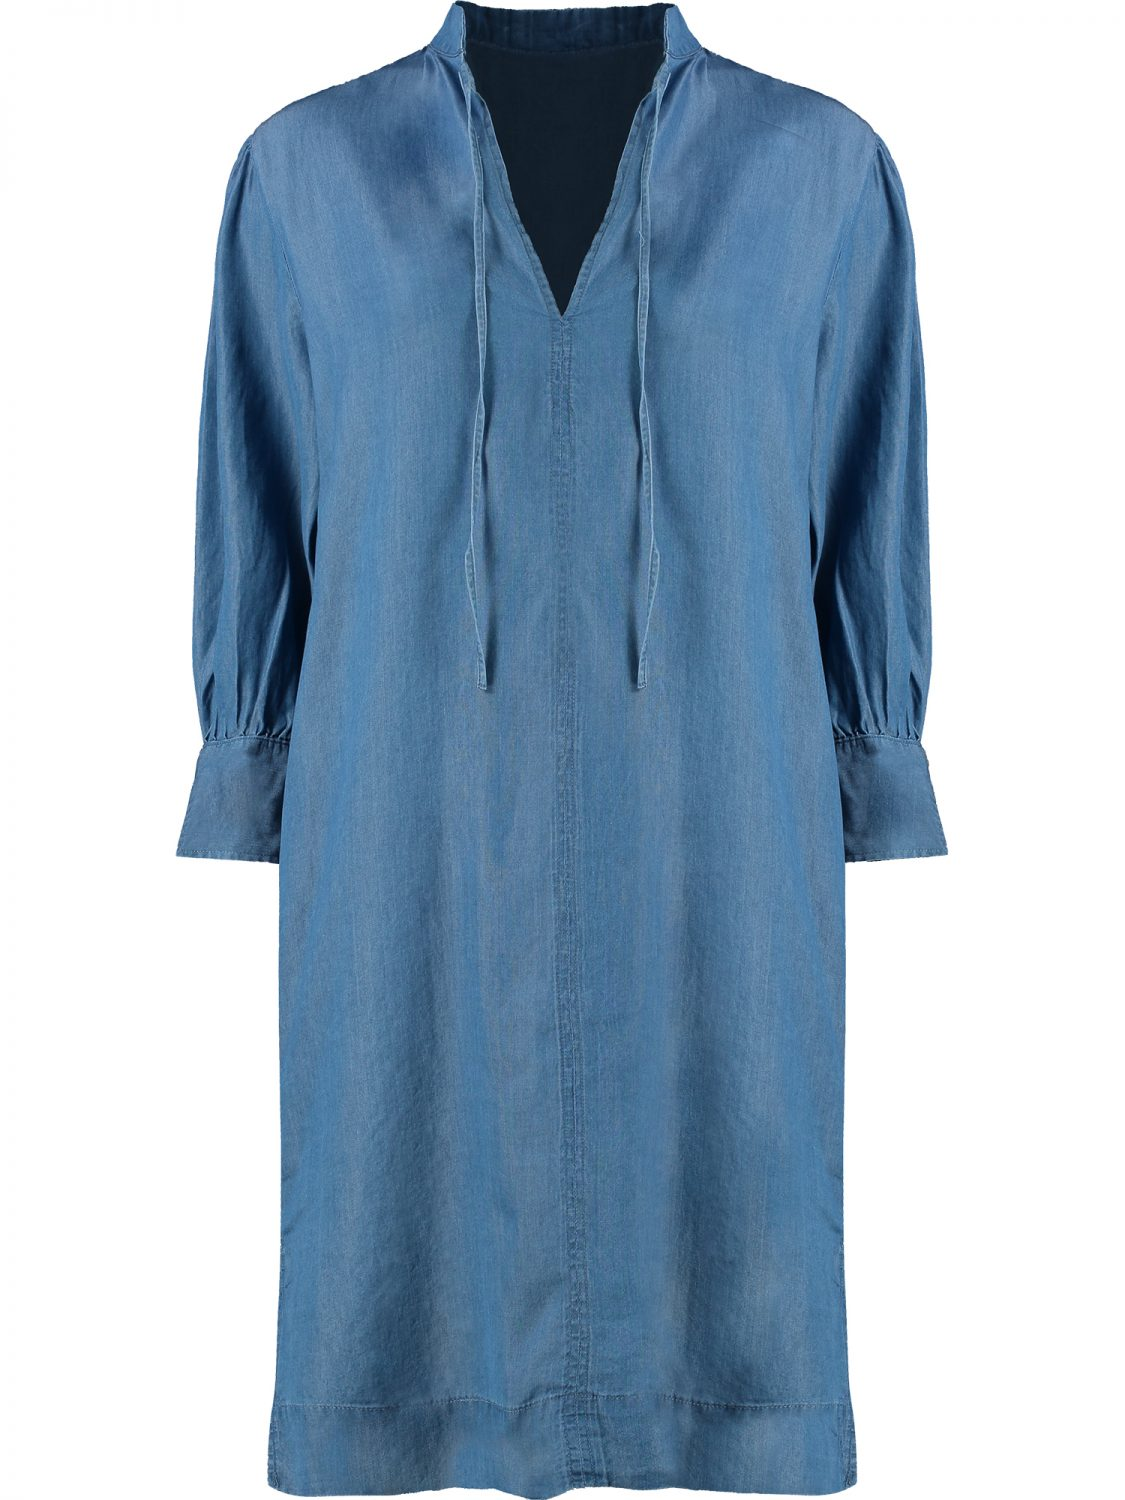 Blue Denim Dress Front 2